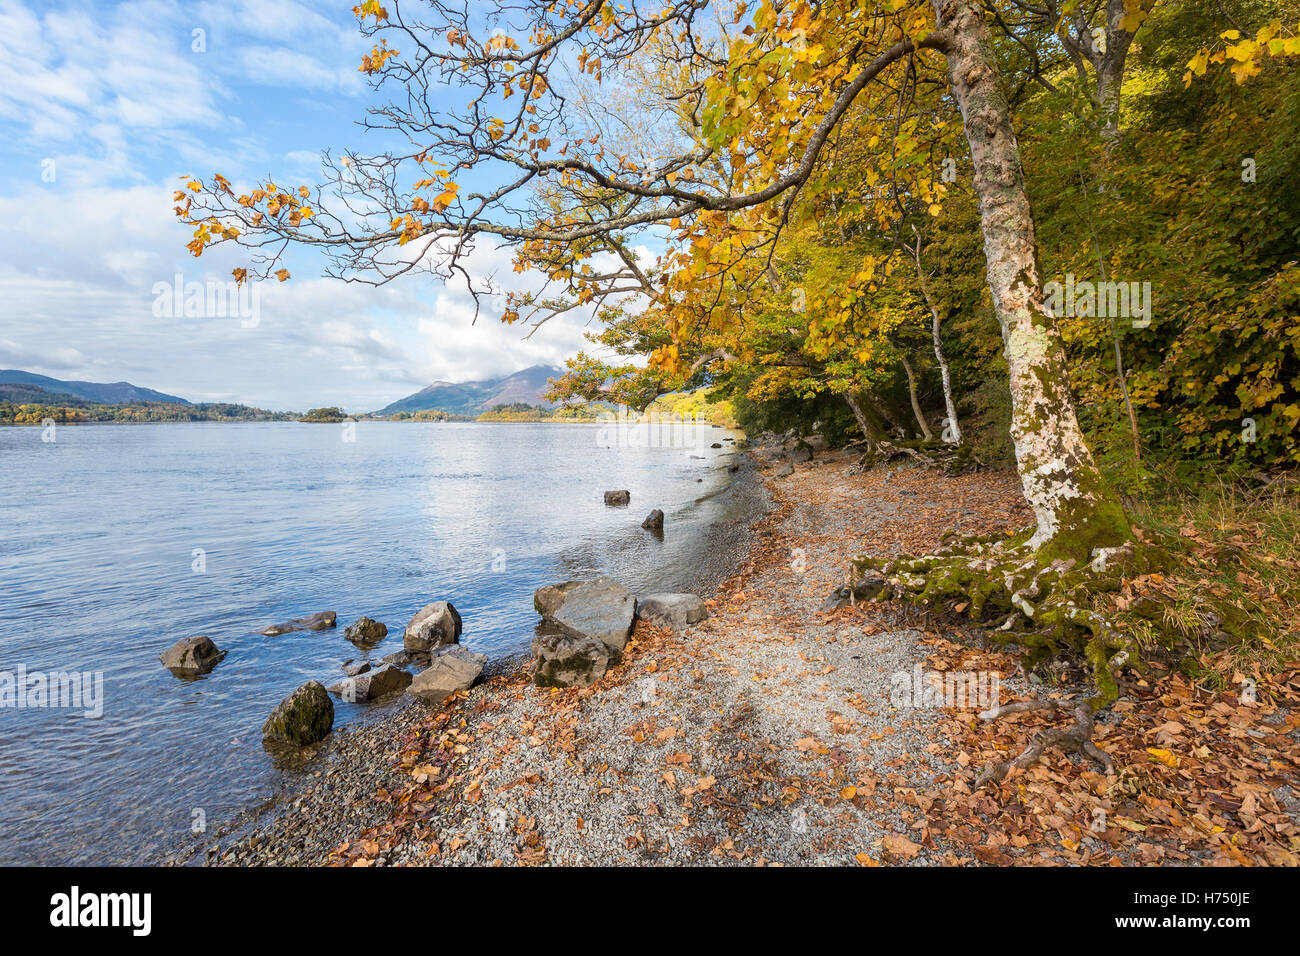 Autumnal Trees on the Shore of Derwent Water, a popular tourist destination in the English Lake District. - Stock Image